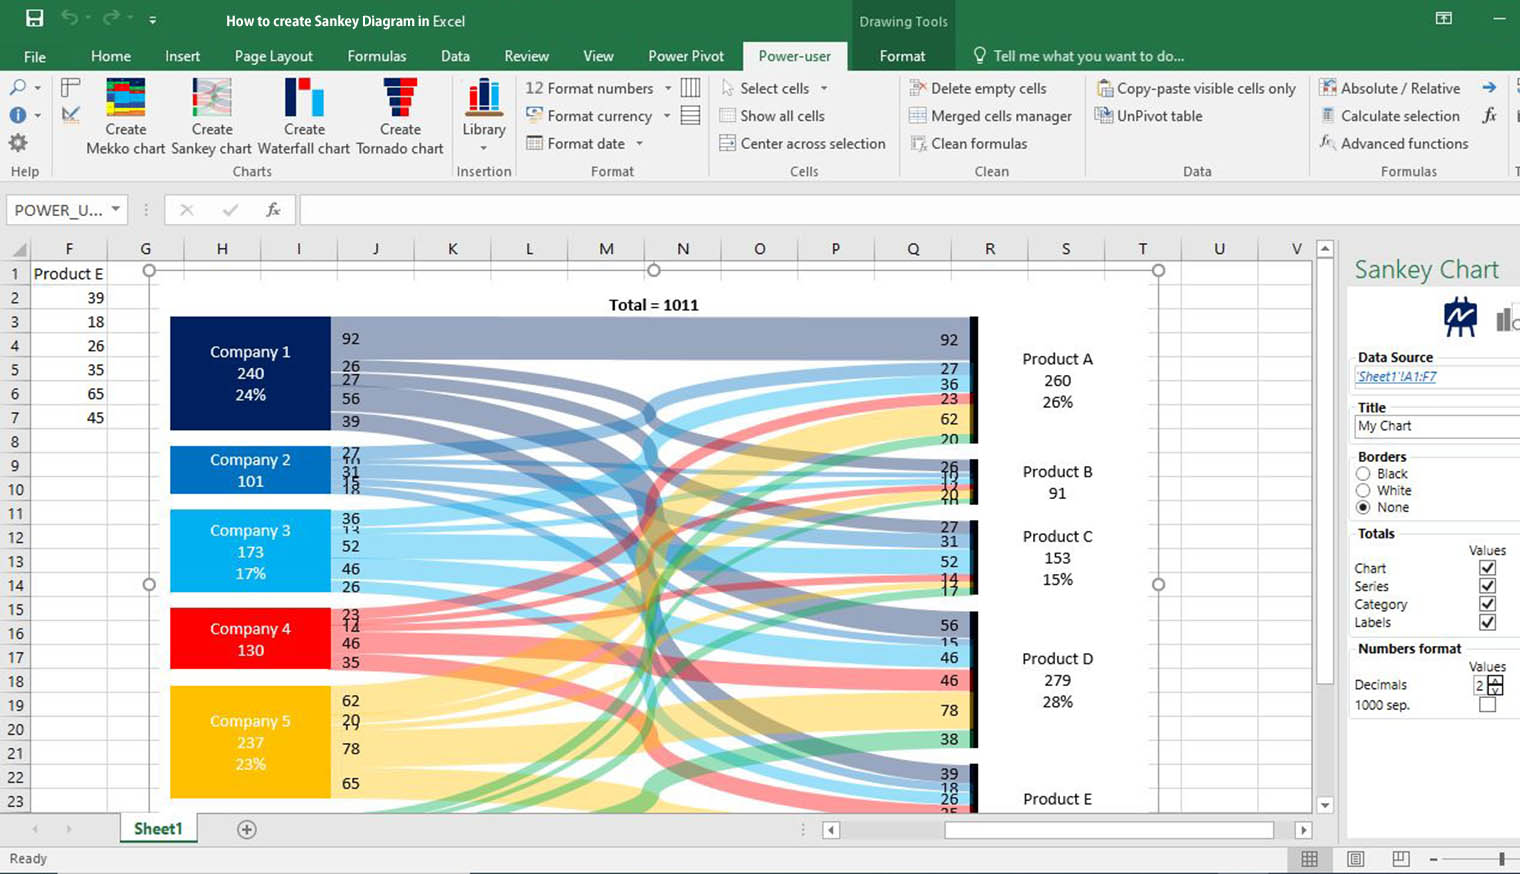 How to draw Sankey diagram in Excel   My Chart Guide